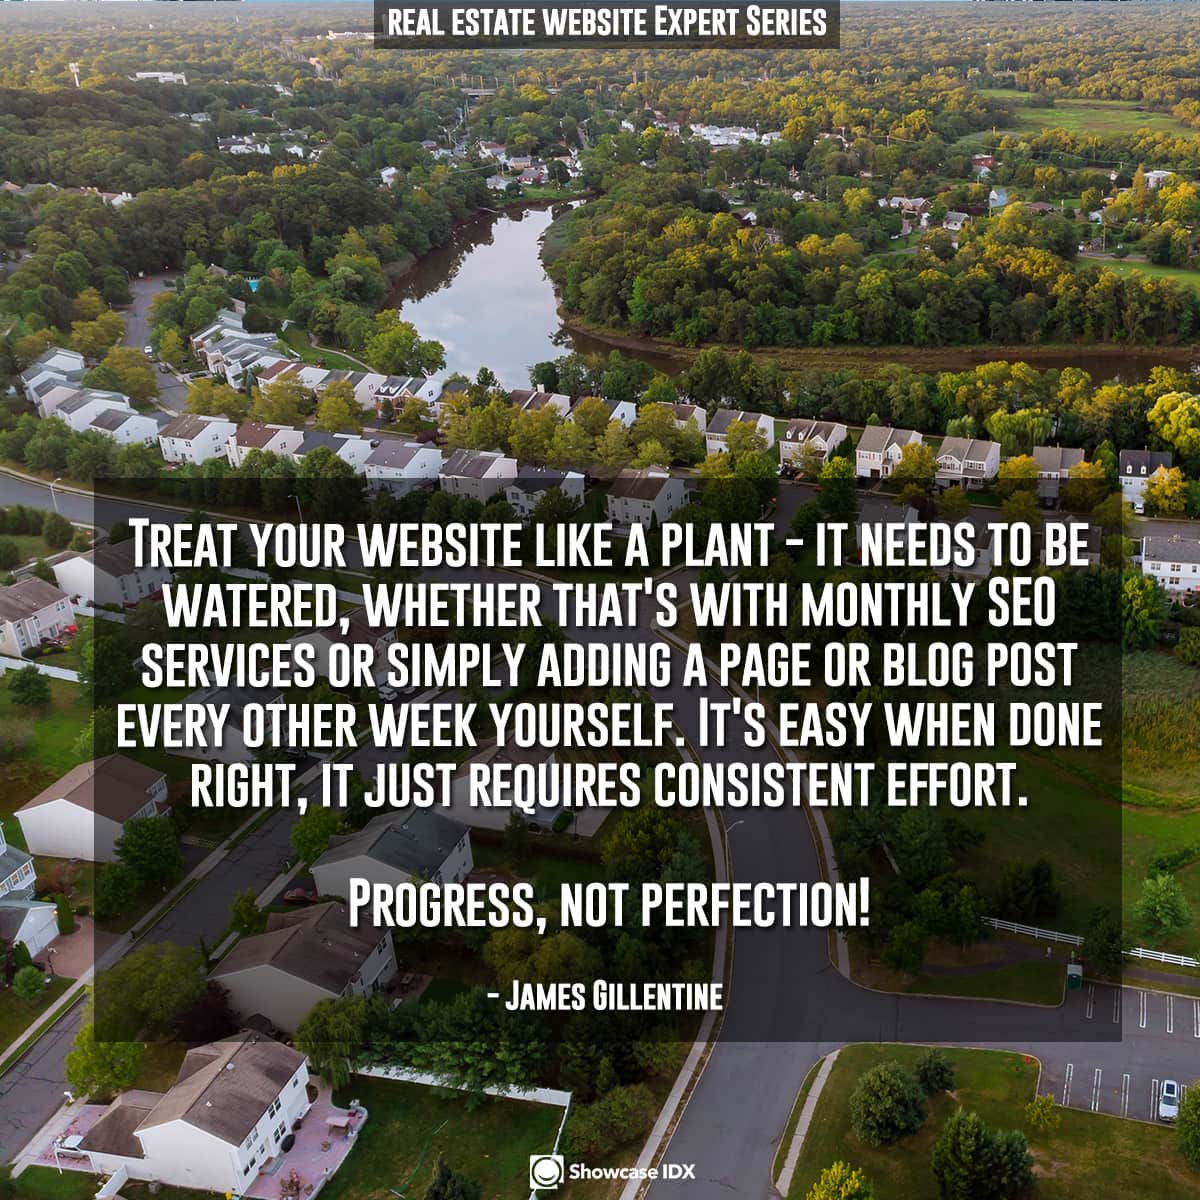 Treat your website like a plant - it needs to be watered, whether that's with monthly SEO services or simply adding a page or blog post every other week yourself. It's easy when done right, it just requires consistent effort. Progress, not perfection!